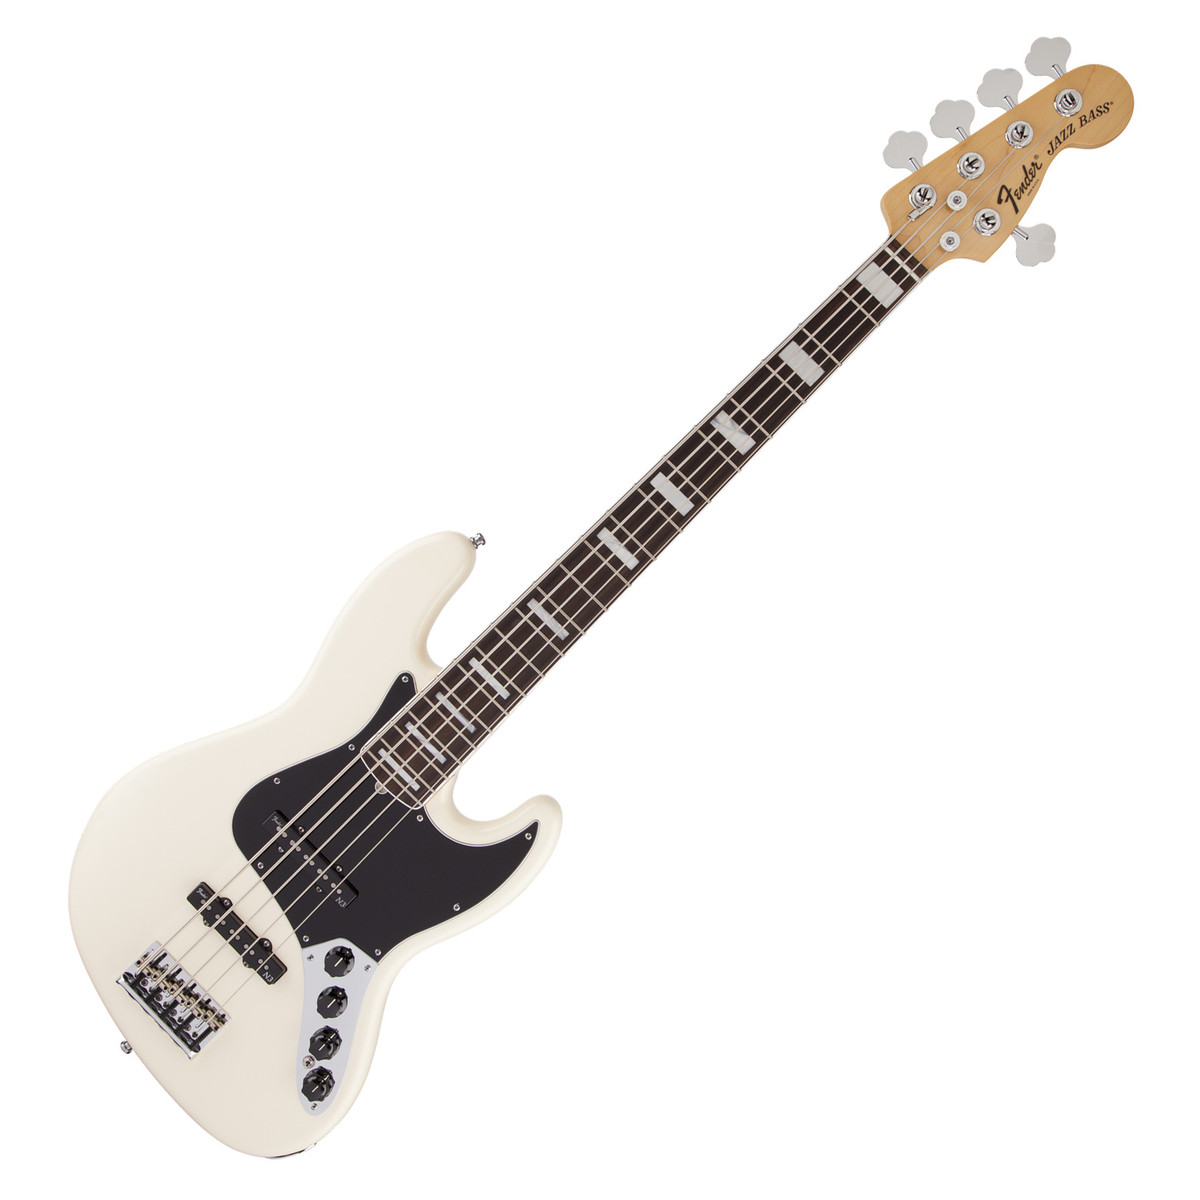 Circuito Jazz Bass Deluxe : Disc fender american deluxe jazz bass v olympic white at